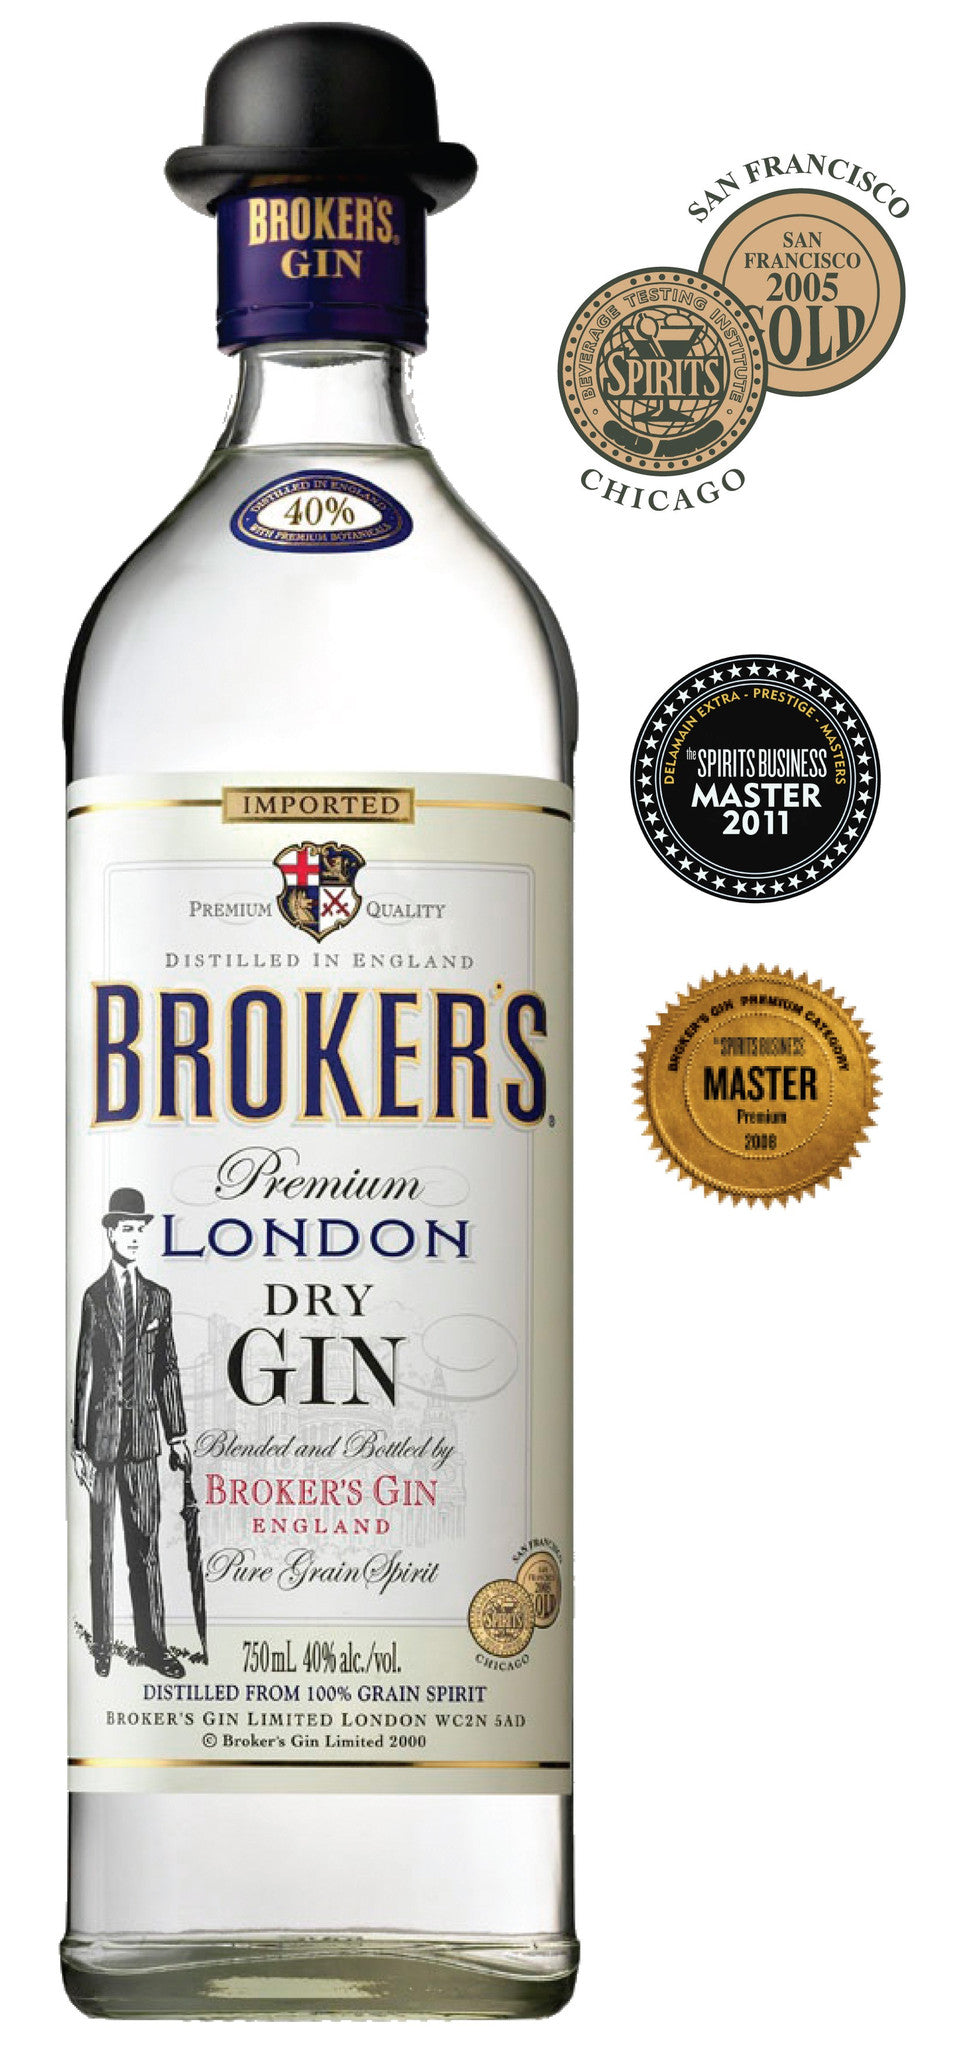 BROKERS PREMIUM LONDON DRY GIN 40% 700ML